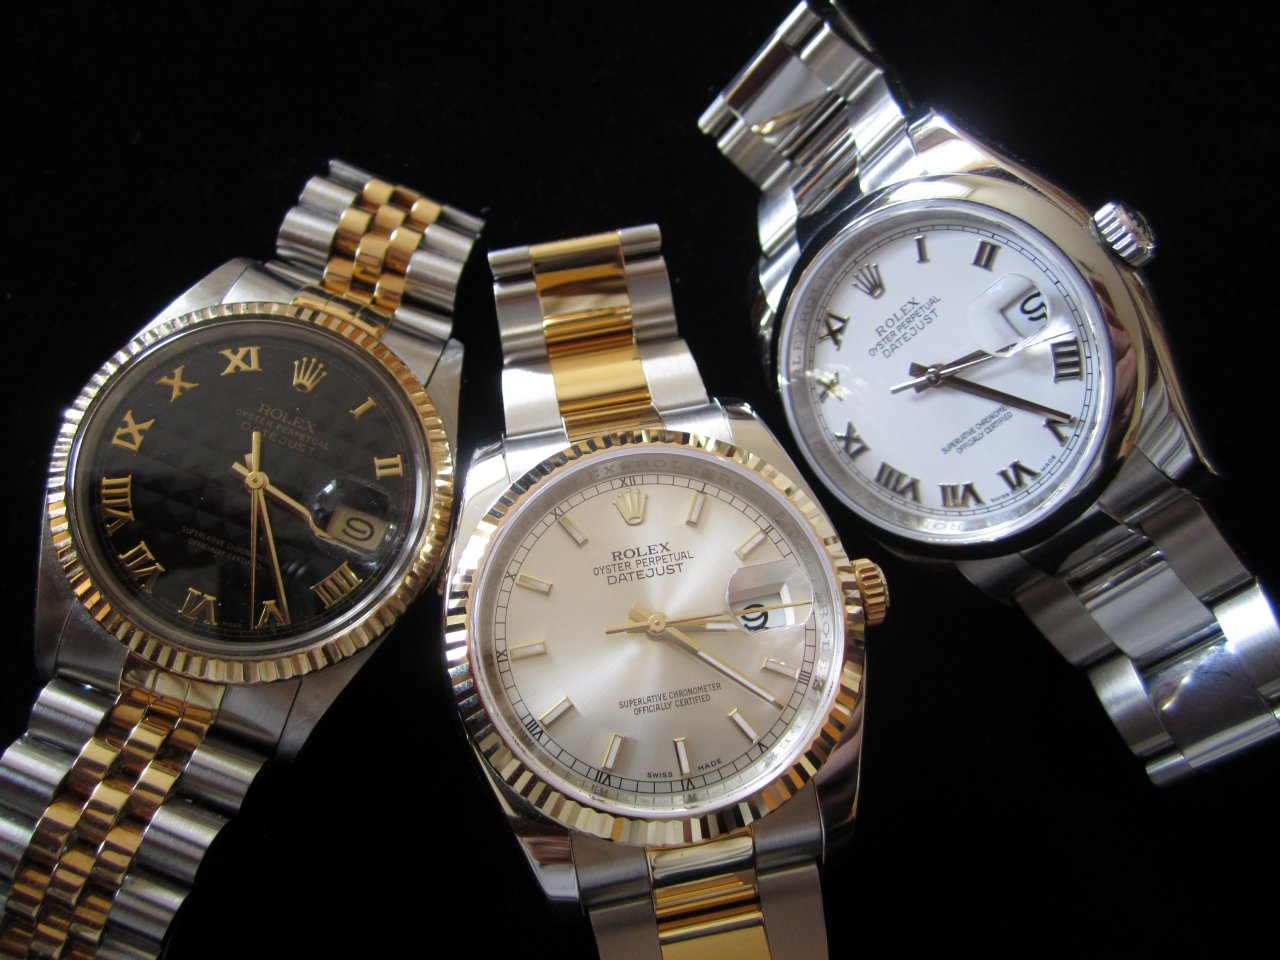 rolex datejust worauf achten preise uhrforum. Black Bedroom Furniture Sets. Home Design Ideas